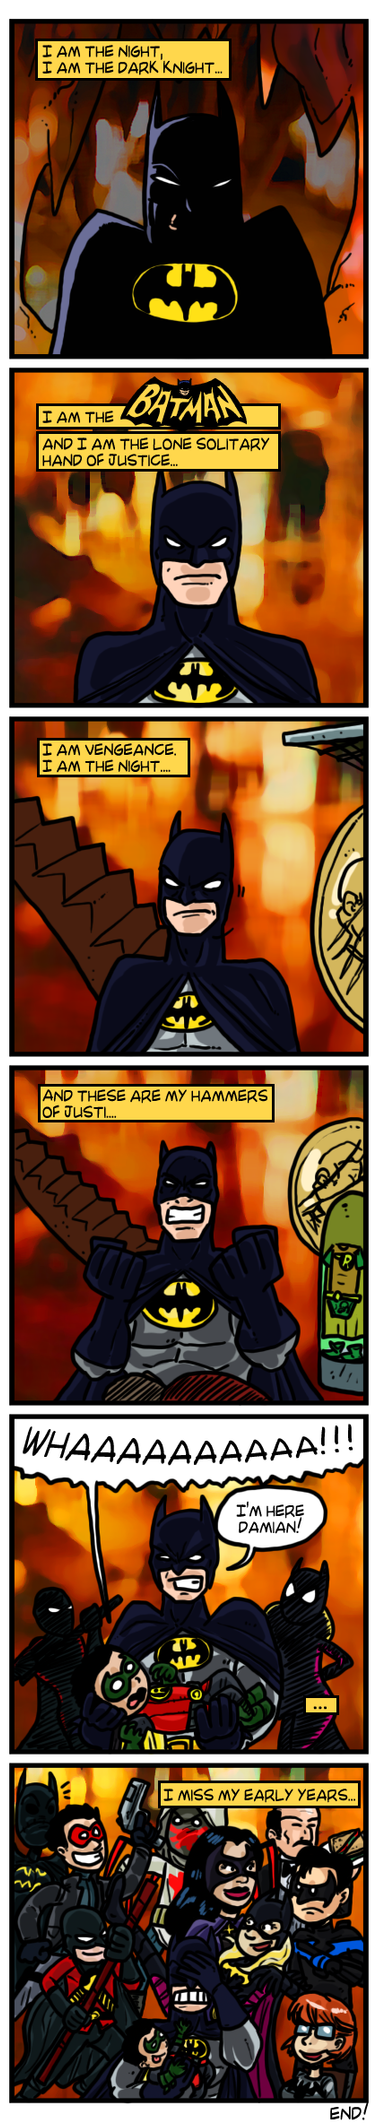 COMIX The Lone Caped Crusader by theEyZmaster